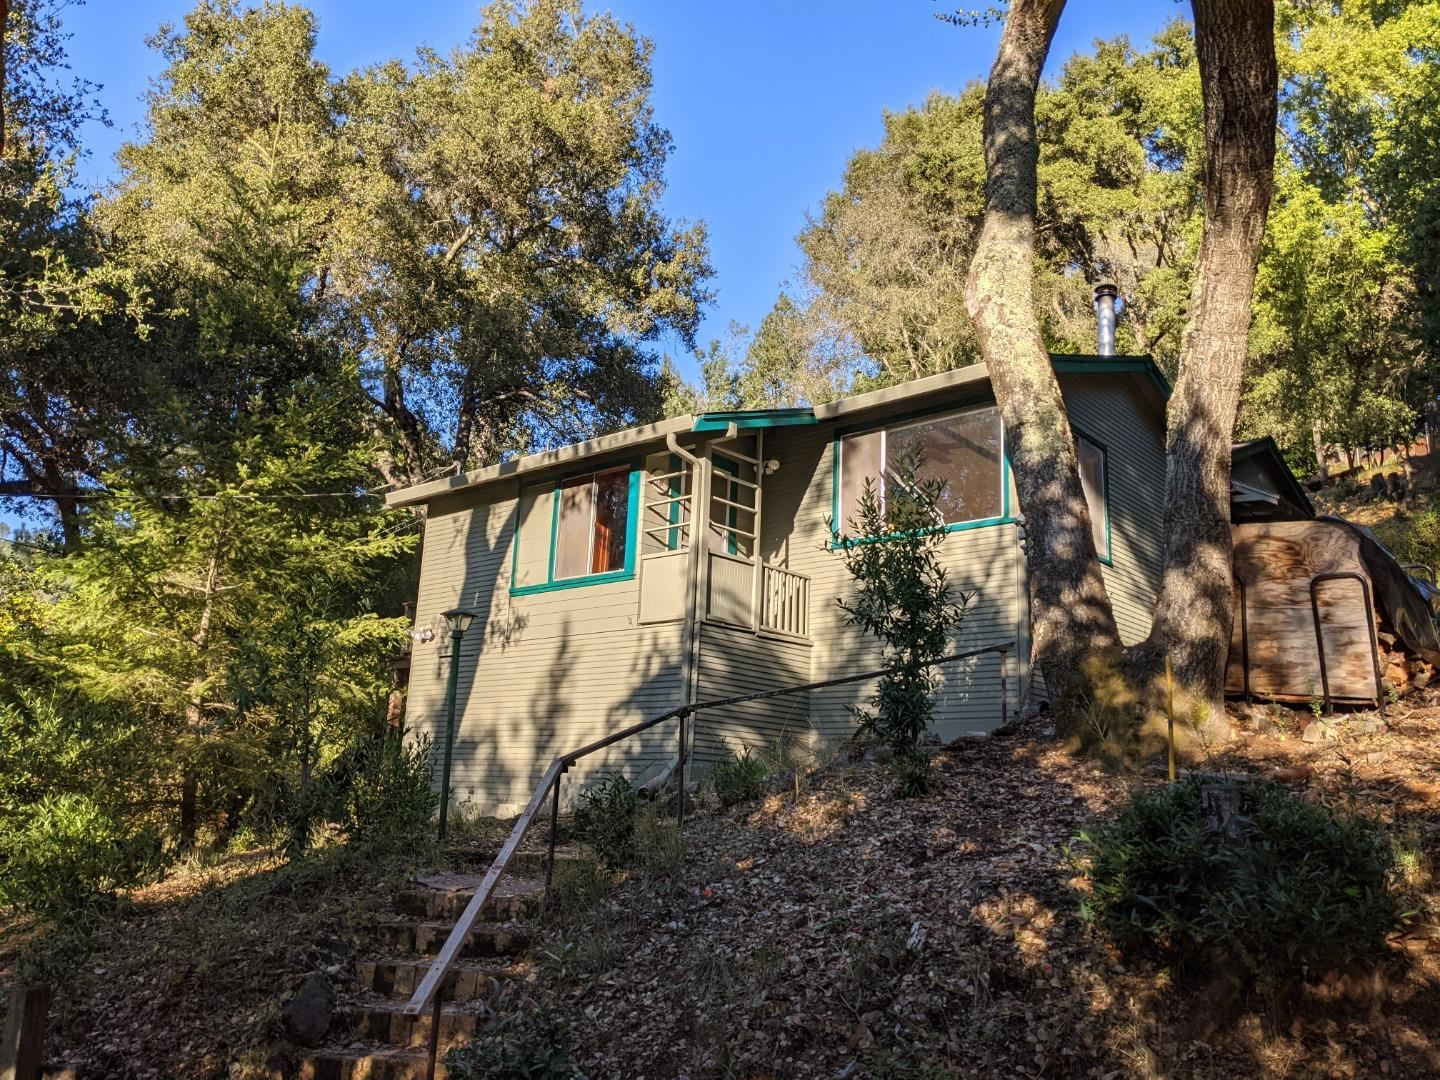 Photo for 21487 Old Mine RD, LOS GATOS, CA 95033 (MLS # ML81818499)